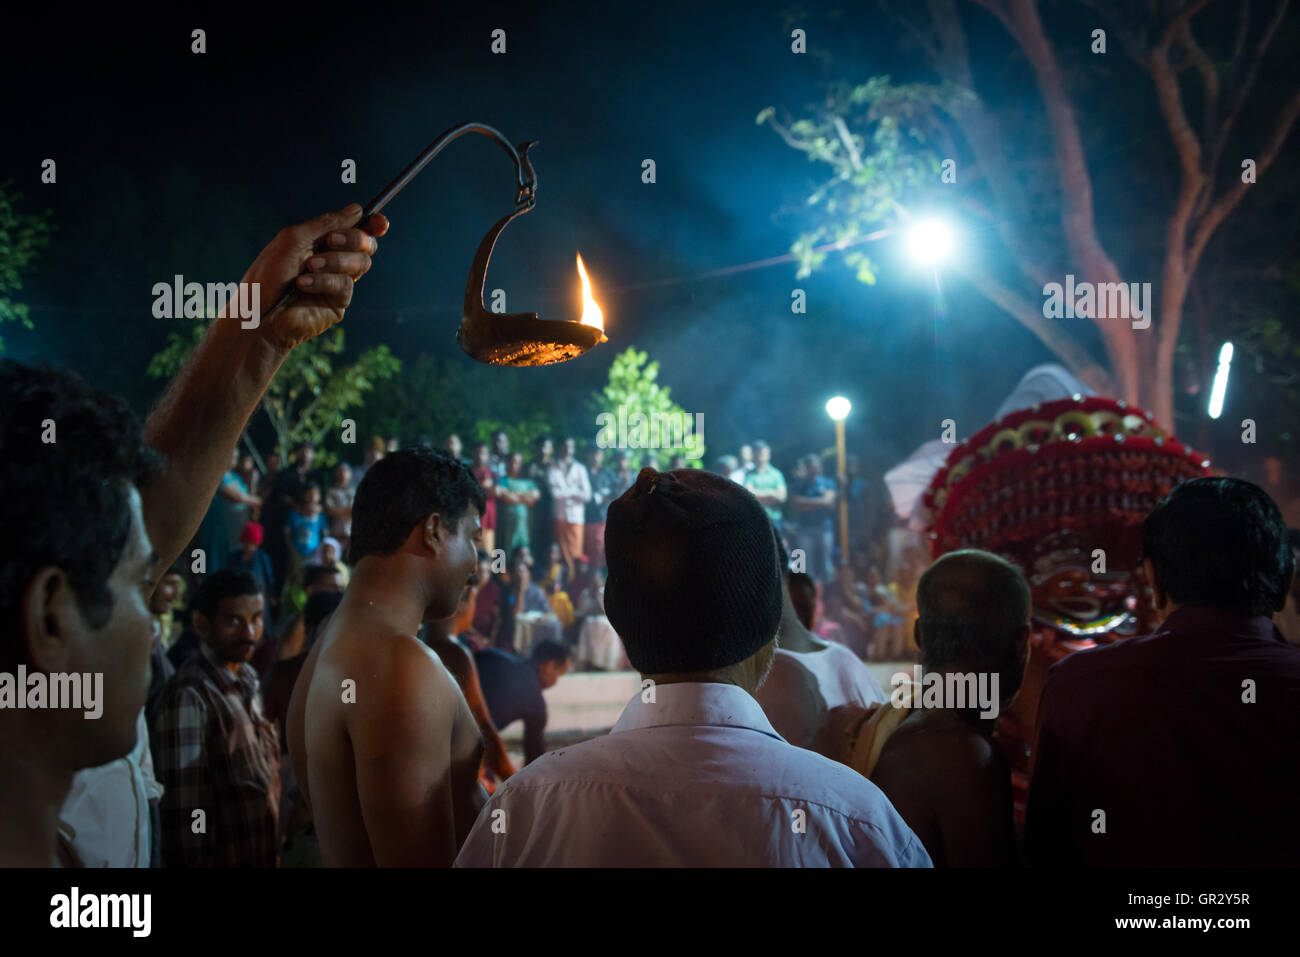 A man holds a flame aloft to illuminate the proceedings at a theyyam ritual in a northern Keralan village near Kannur - Stock Image